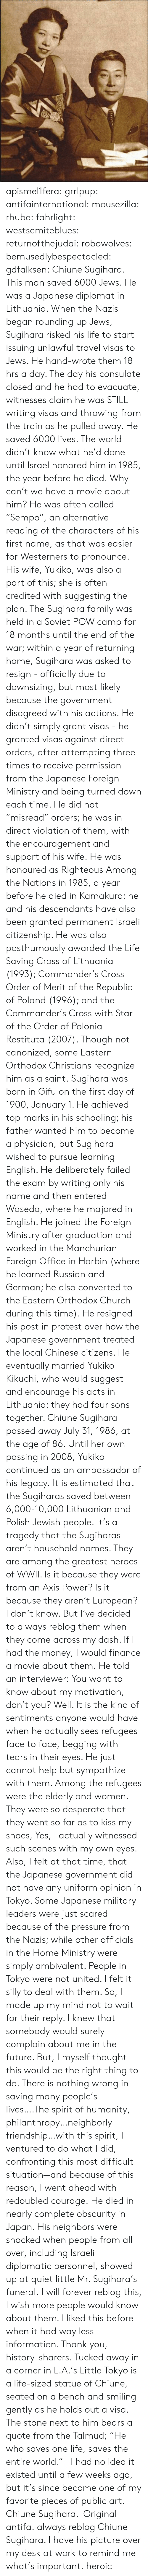 """diplomat: apismel1fera: grrlpup:  antifainternational:  mousezilla:  rhube:  fahrlight:  westsemiteblues:  returnofthejudai:  robowolves:  bemusedlybespectacled:  gdfalksen:  Chiune Sugihara. This man saved 6000 Jews. He was a Japanese diplomat in Lithuania. When the Nazis began rounding up Jews, Sugihara risked his life to start issuing unlawful travel visas to Jews. He hand-wrote them 18 hrs a day. The day his consulate closed and he had to evacuate, witnesses claim he was STILL writing visas and throwing from the train as he pulled away. He saved 6000 lives. The world didn't know what he'd done until Israel honored him in 1985, the year before he died.  Why can't we have a movie about him?  He was often called """"Sempo"""", an alternative reading of the characters of his first name, as that was easier for Westerners to pronounce. His wife, Yukiko, was also a part of this; she is often credited with suggesting the plan. The Sugihara family was held in a Soviet POW camp for 18 months until the end of the war; within a year of returning home, Sugihara was asked to resign - officially due to downsizing, but most likely because the government disagreed with his actions. He didn't simply grant visas - he granted visas against direct orders, after attempting three times to receive permission from the Japanese Foreign Ministry and being turned down each time. He did not """"misread"""" orders; he was in direct violation of them, with the encouragement and support of his wife. He was honoured as Righteous Among the Nations in 1985, a year before he died in Kamakura; he and his descendants have also been granted permanent Israeli citizenship. He was also posthumously awarded the Life Saving Cross of Lithuania (1993); Commander's Cross Order of Merit of the Republic of Poland (1996); and the Commander's Cross with Star of the Order of Polonia Restituta (2007). Though not canonized, some Eastern Orthodox Christians recognize him as a saint. Sugihara was born in Gifu on the first day of"""